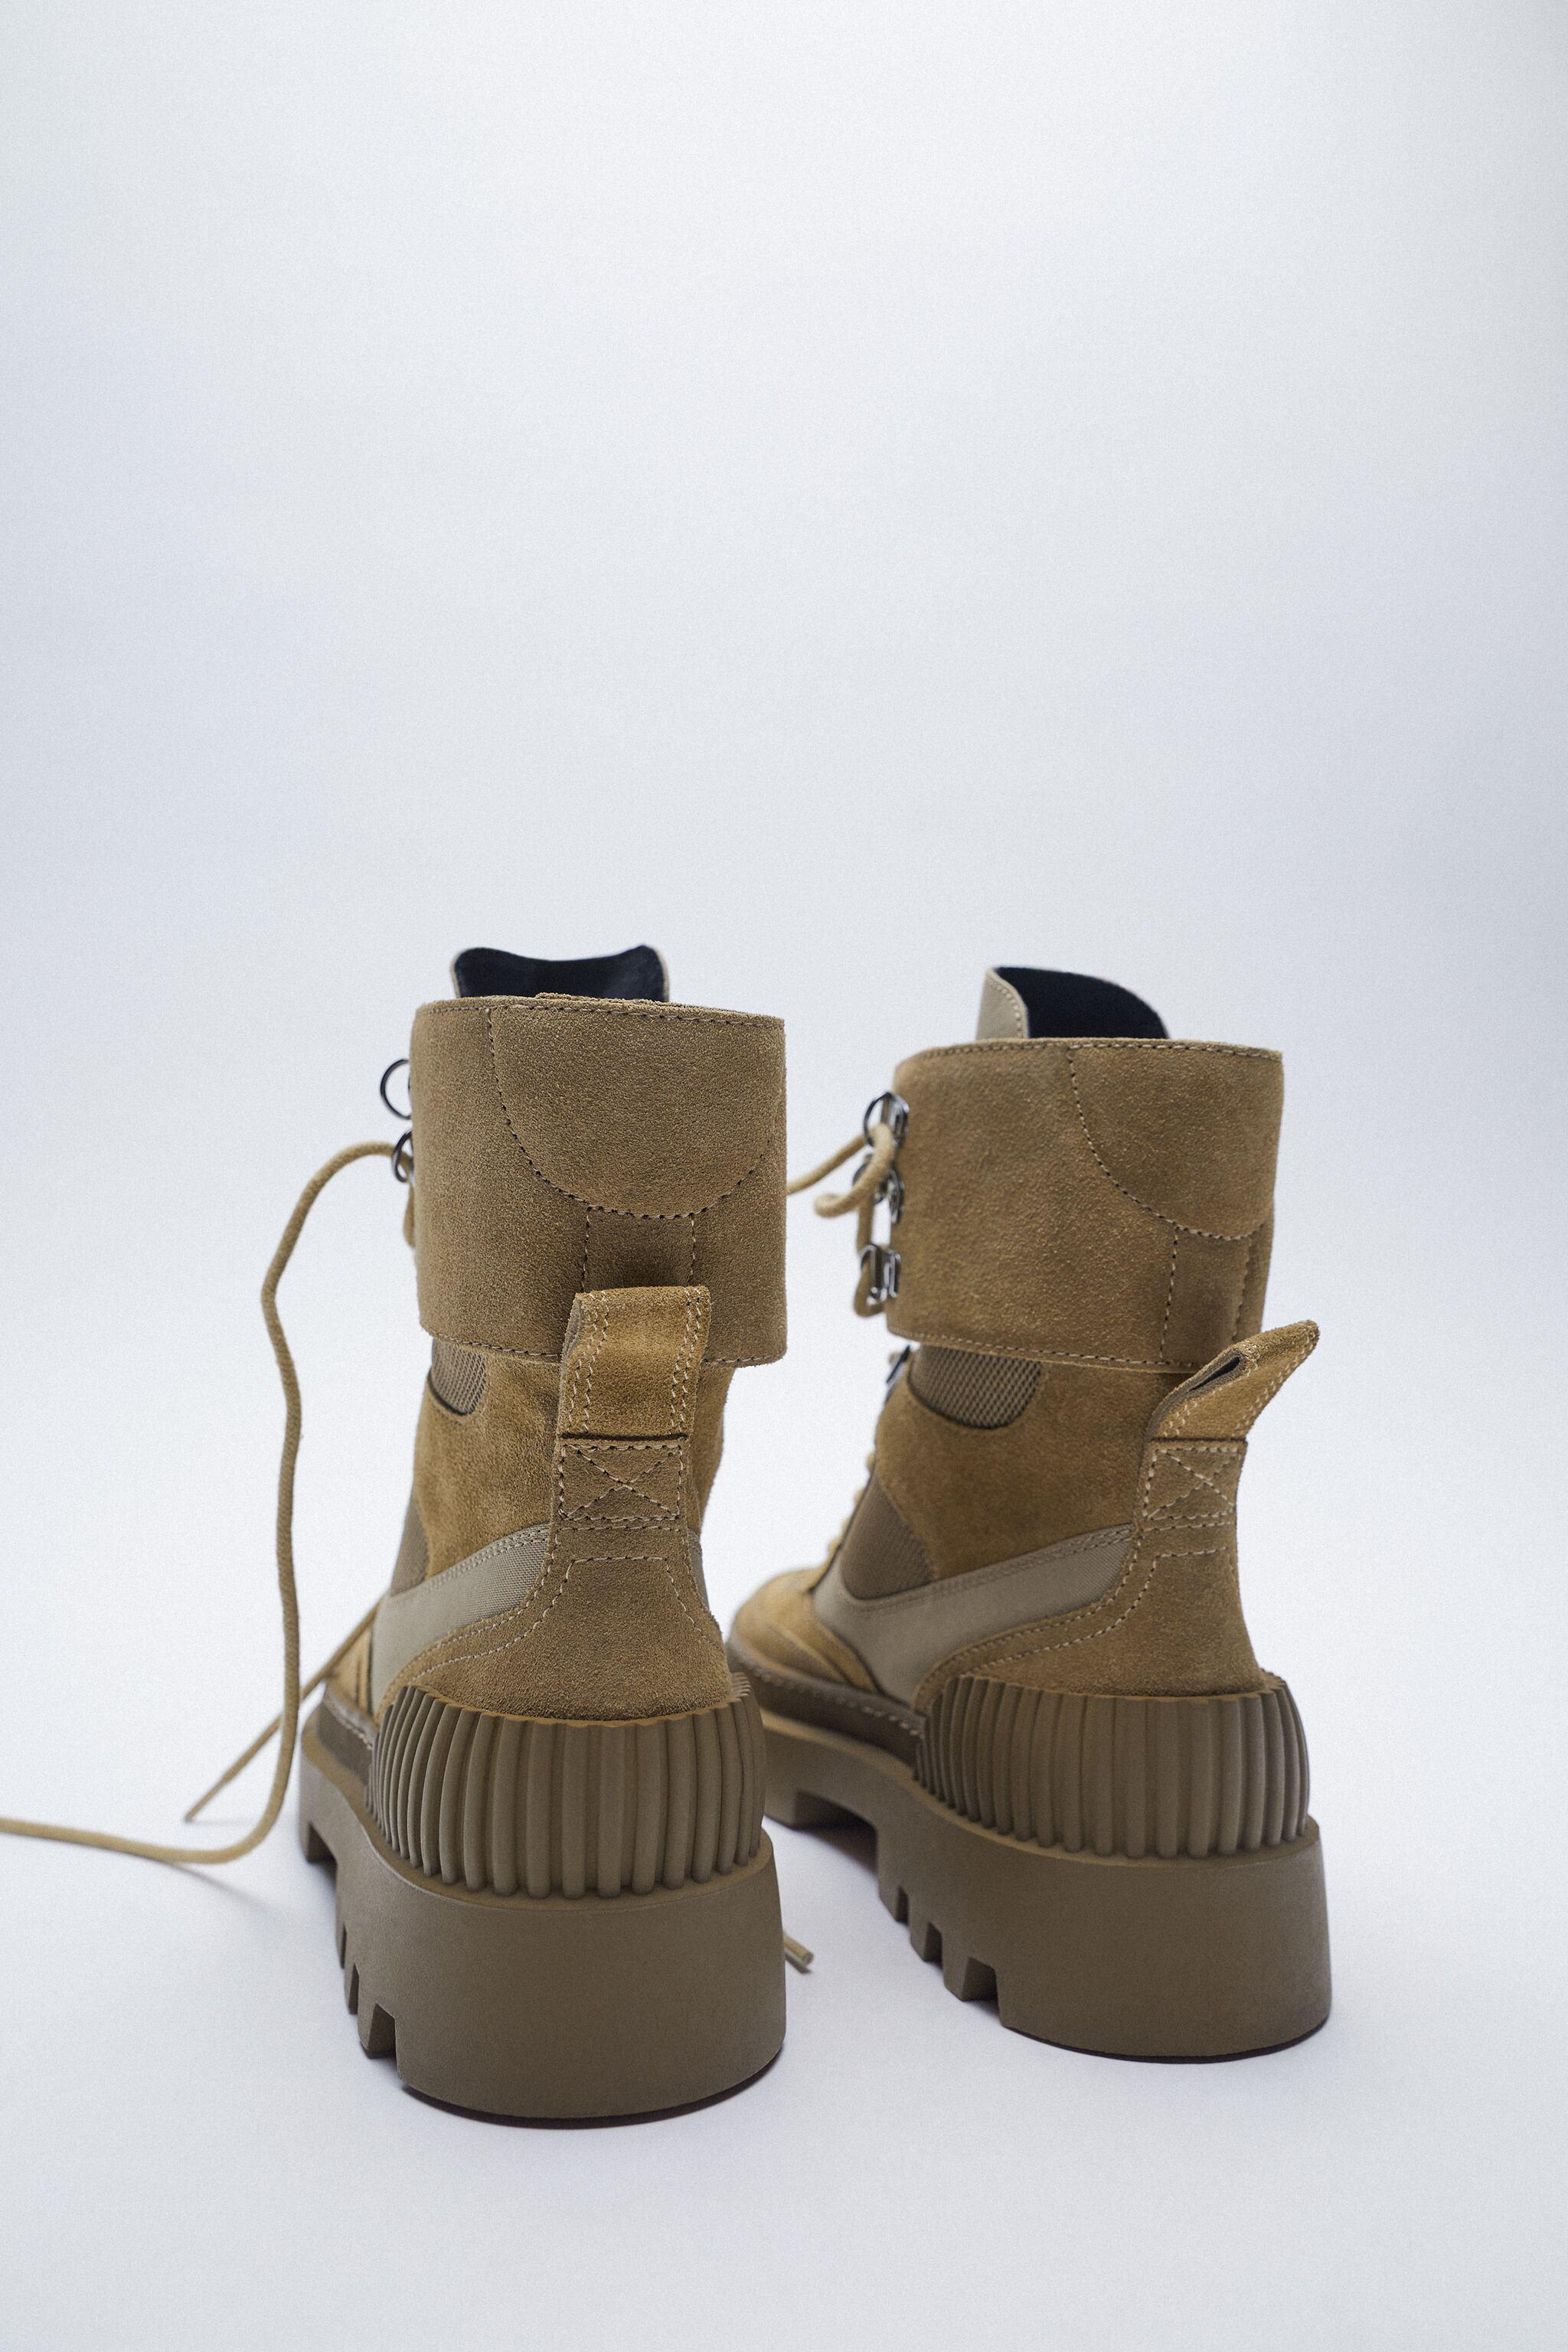 LACED SPLIT LEATHER LOW HEEL ANKLE BOOTS 6